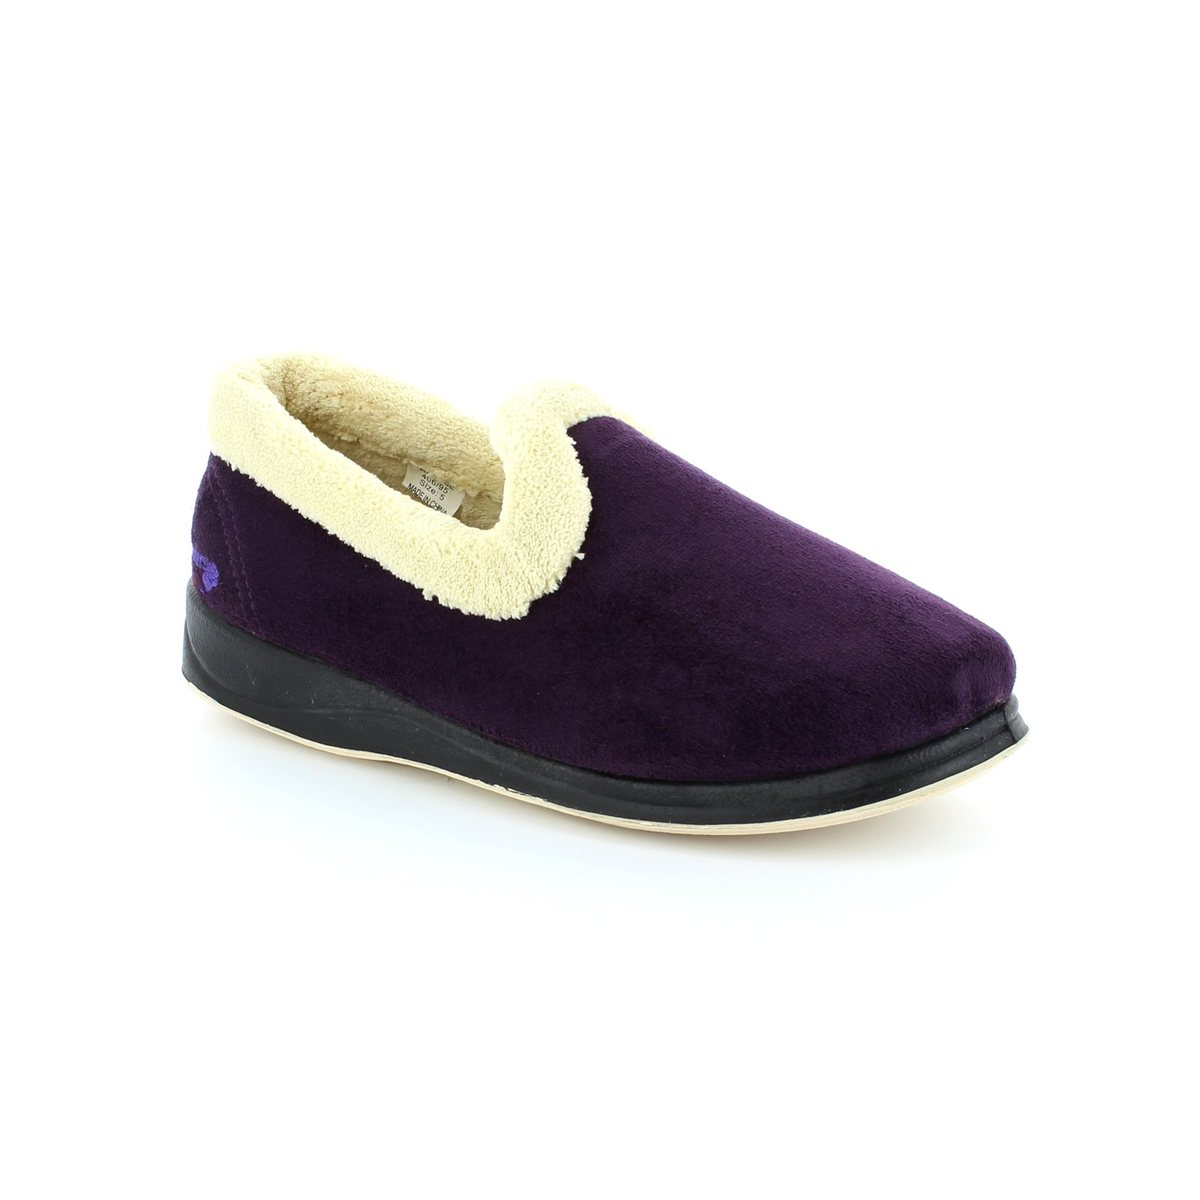 fa21b519bde0 Padders Slippers - Purple - 406 95 REPOSE 2E FIT